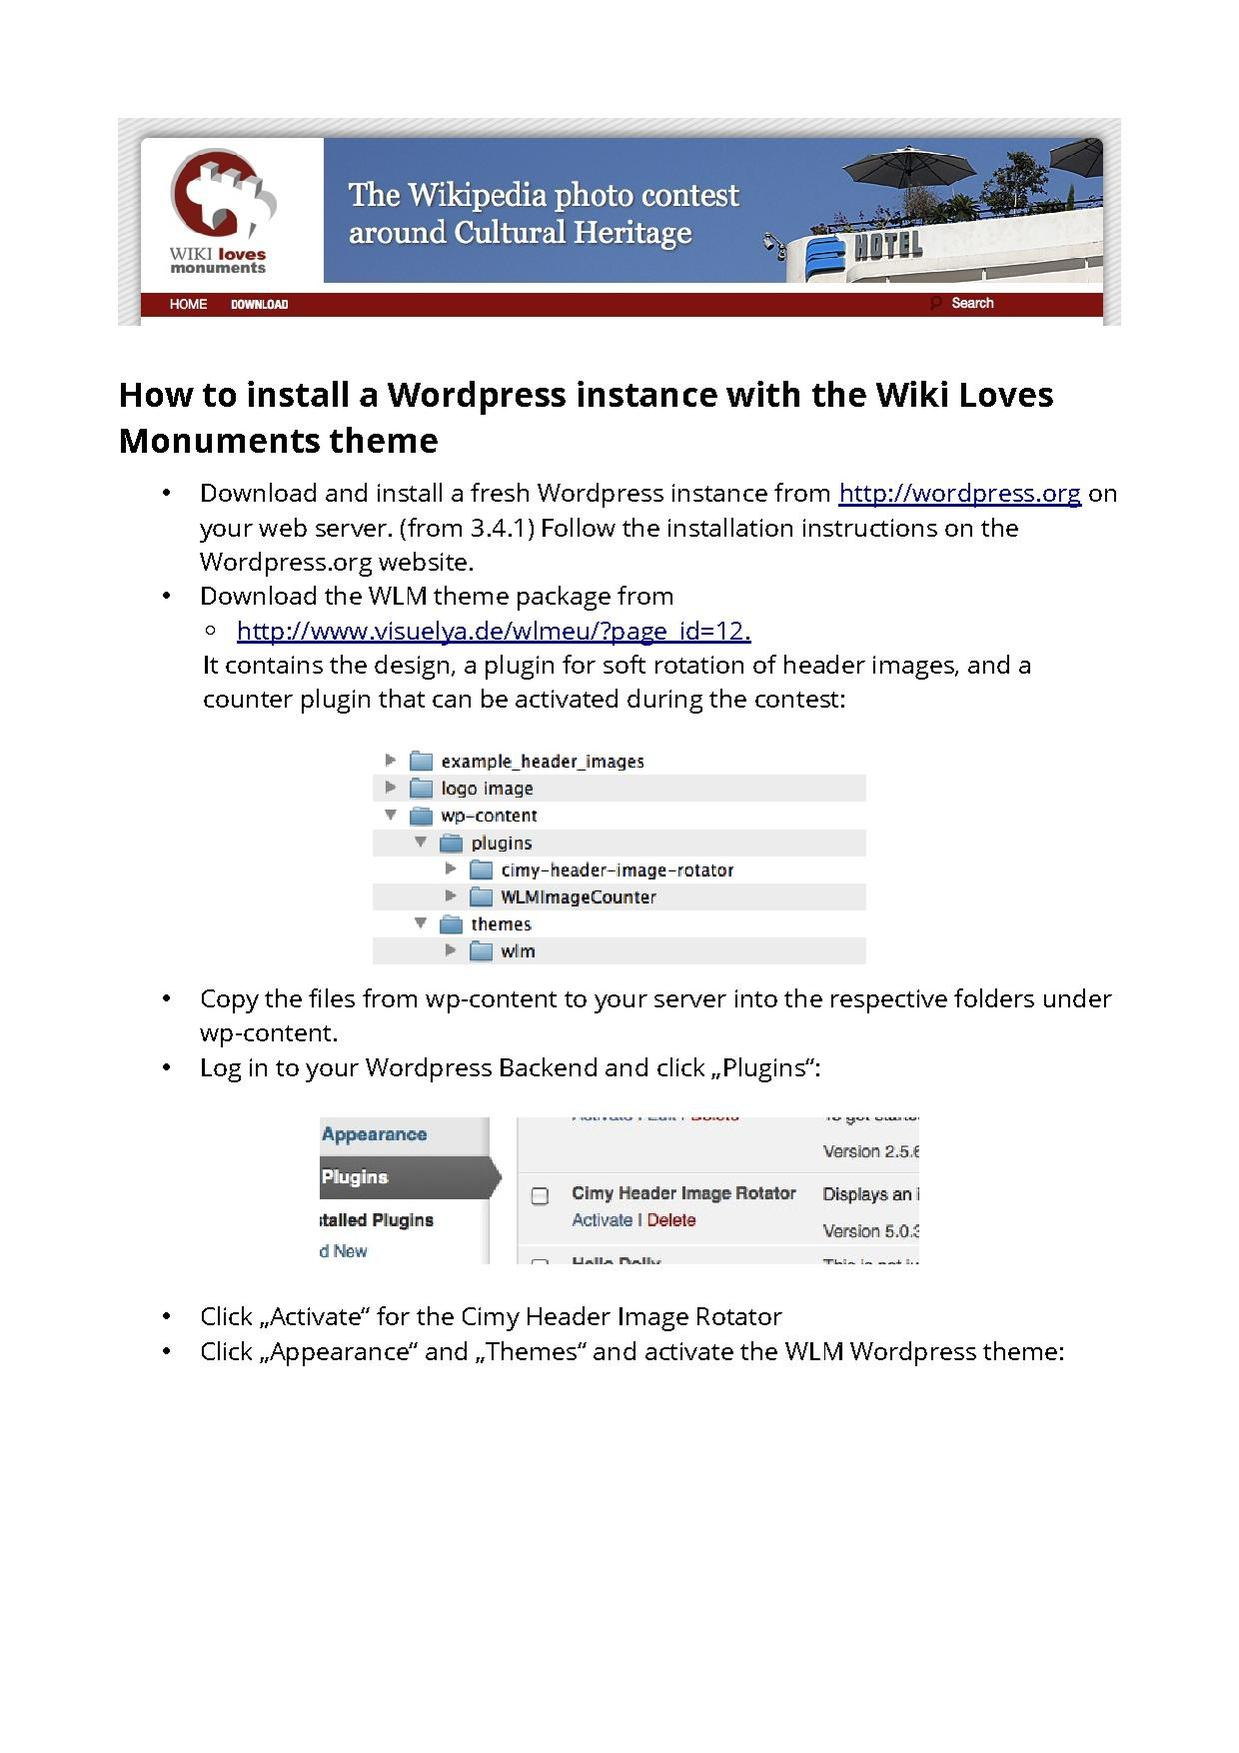 Wlm-wordpress-theme-how-to-documentation.pdf